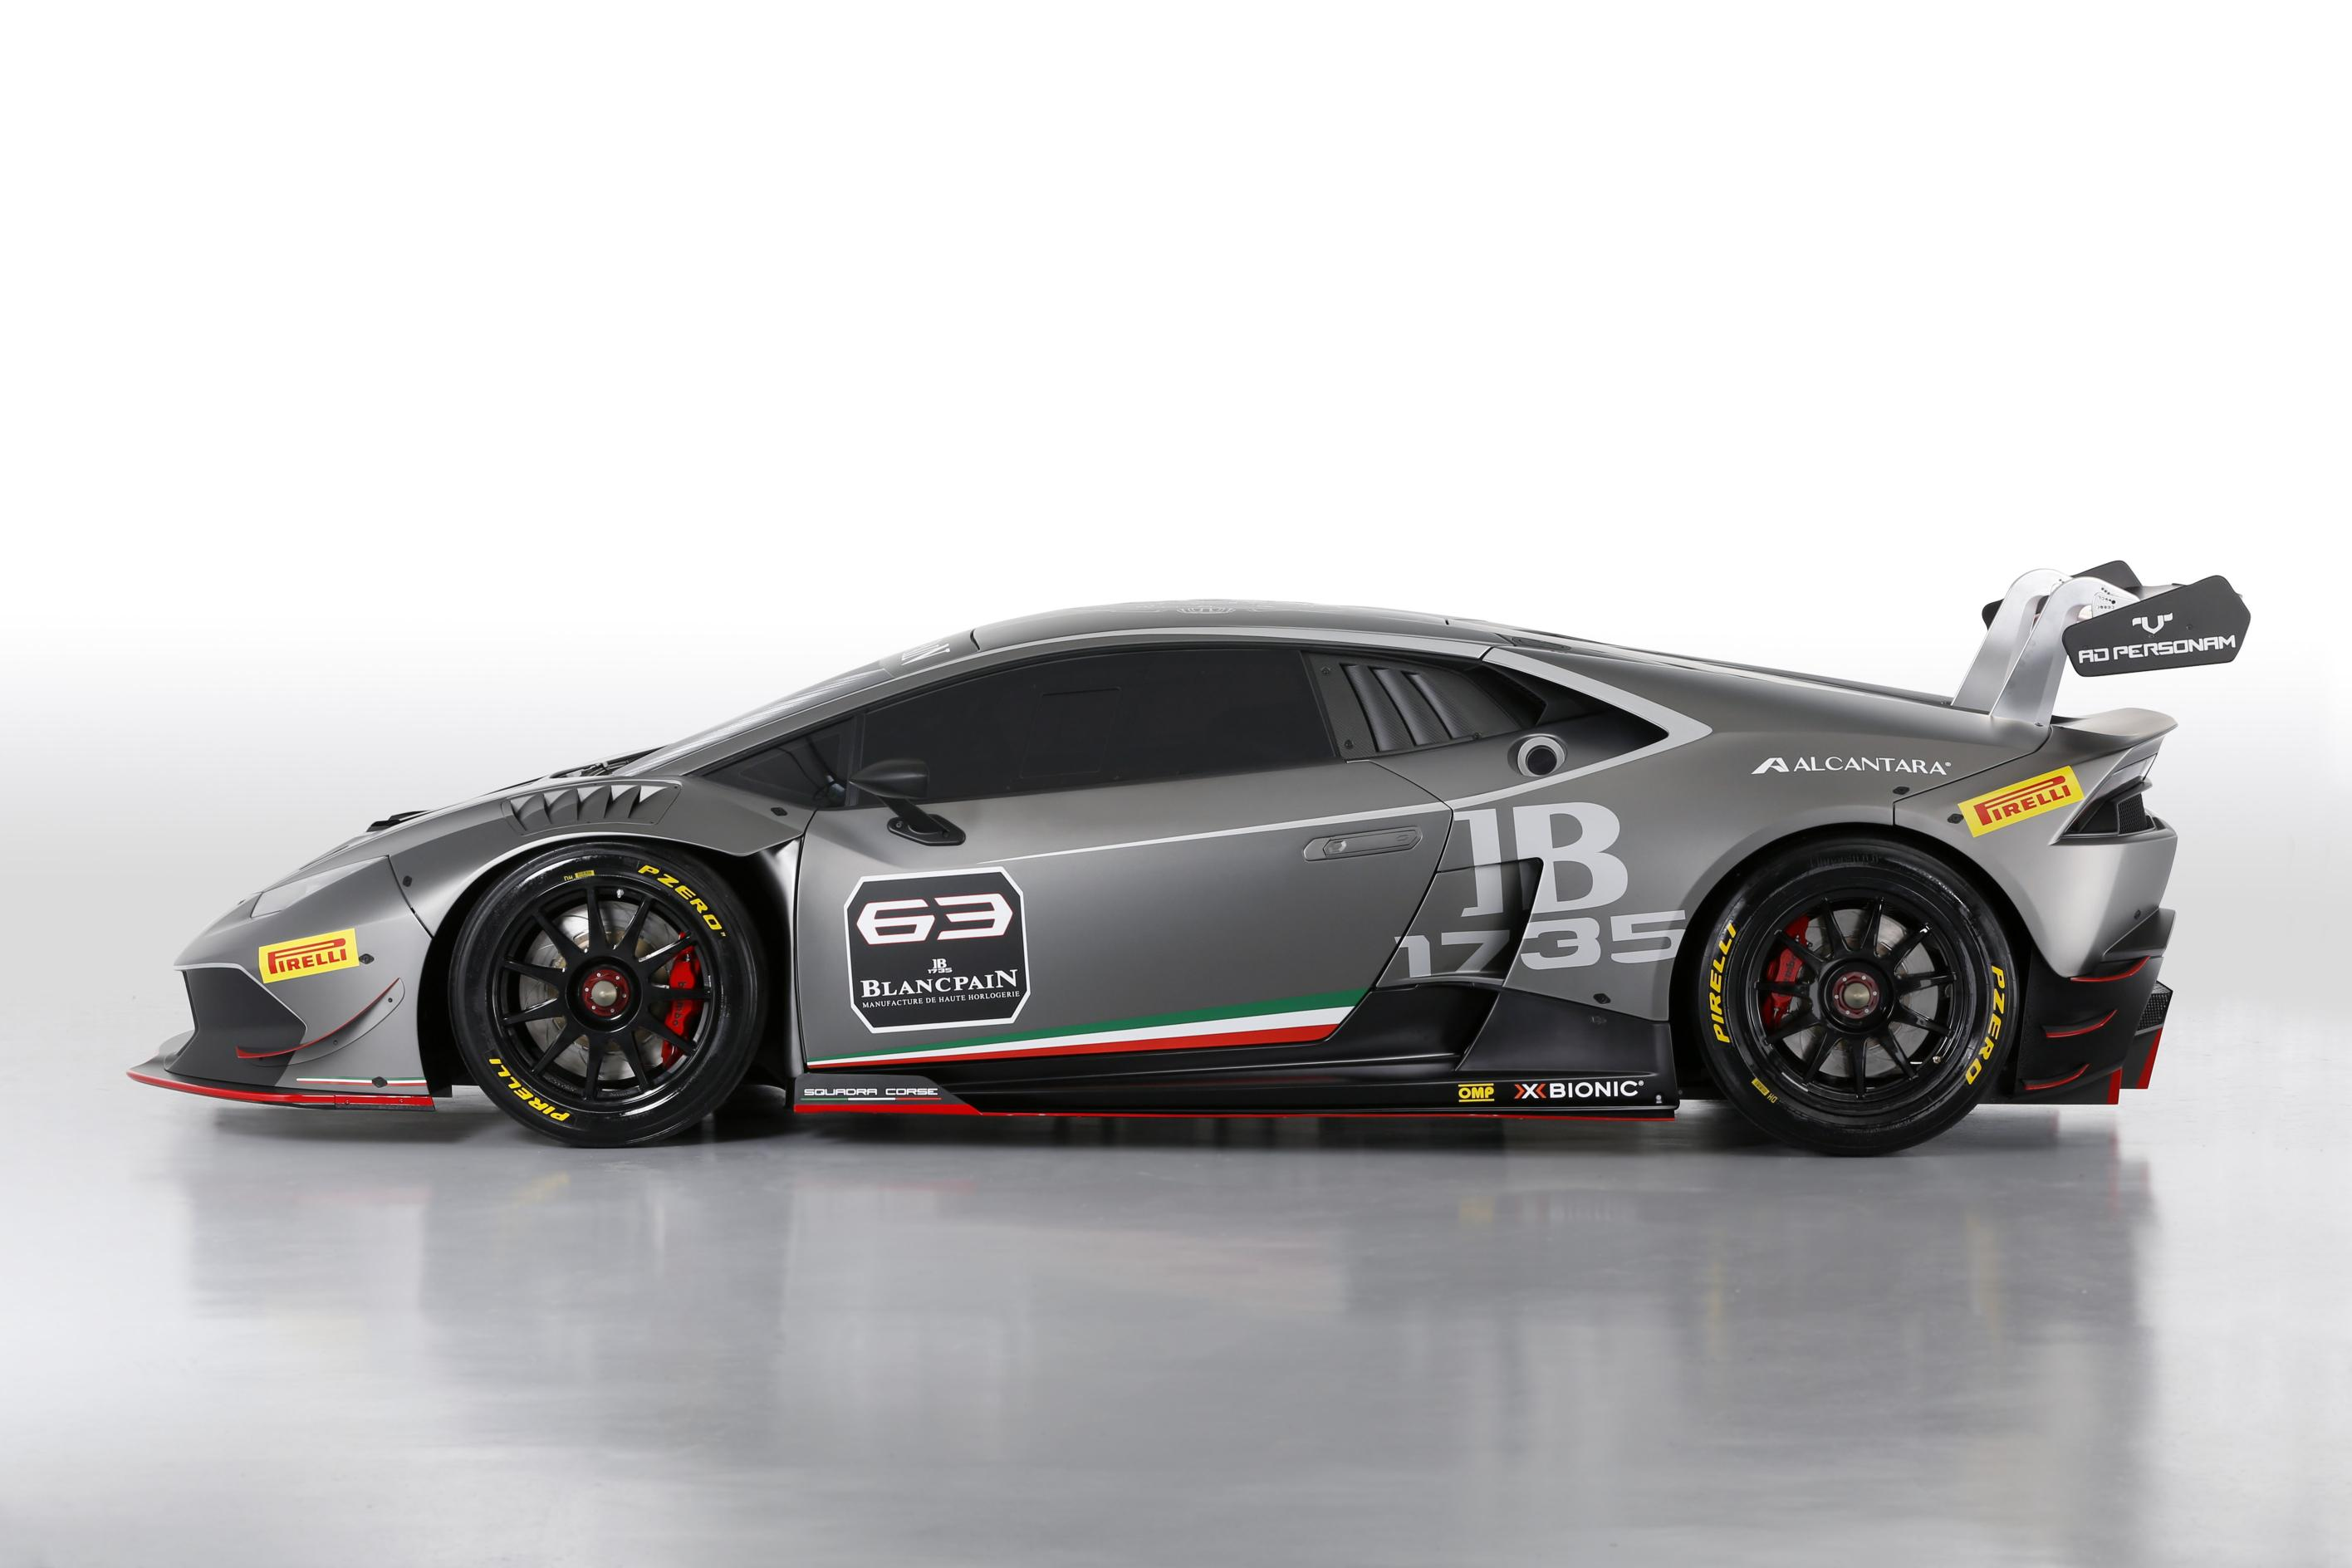 Santu0027Agata Bolognese, 20 August 2014. Automobili Lamborghini Presents Its  New Generation Racecar Developed By Its Motorsport Department: The New  Huracán LP ...